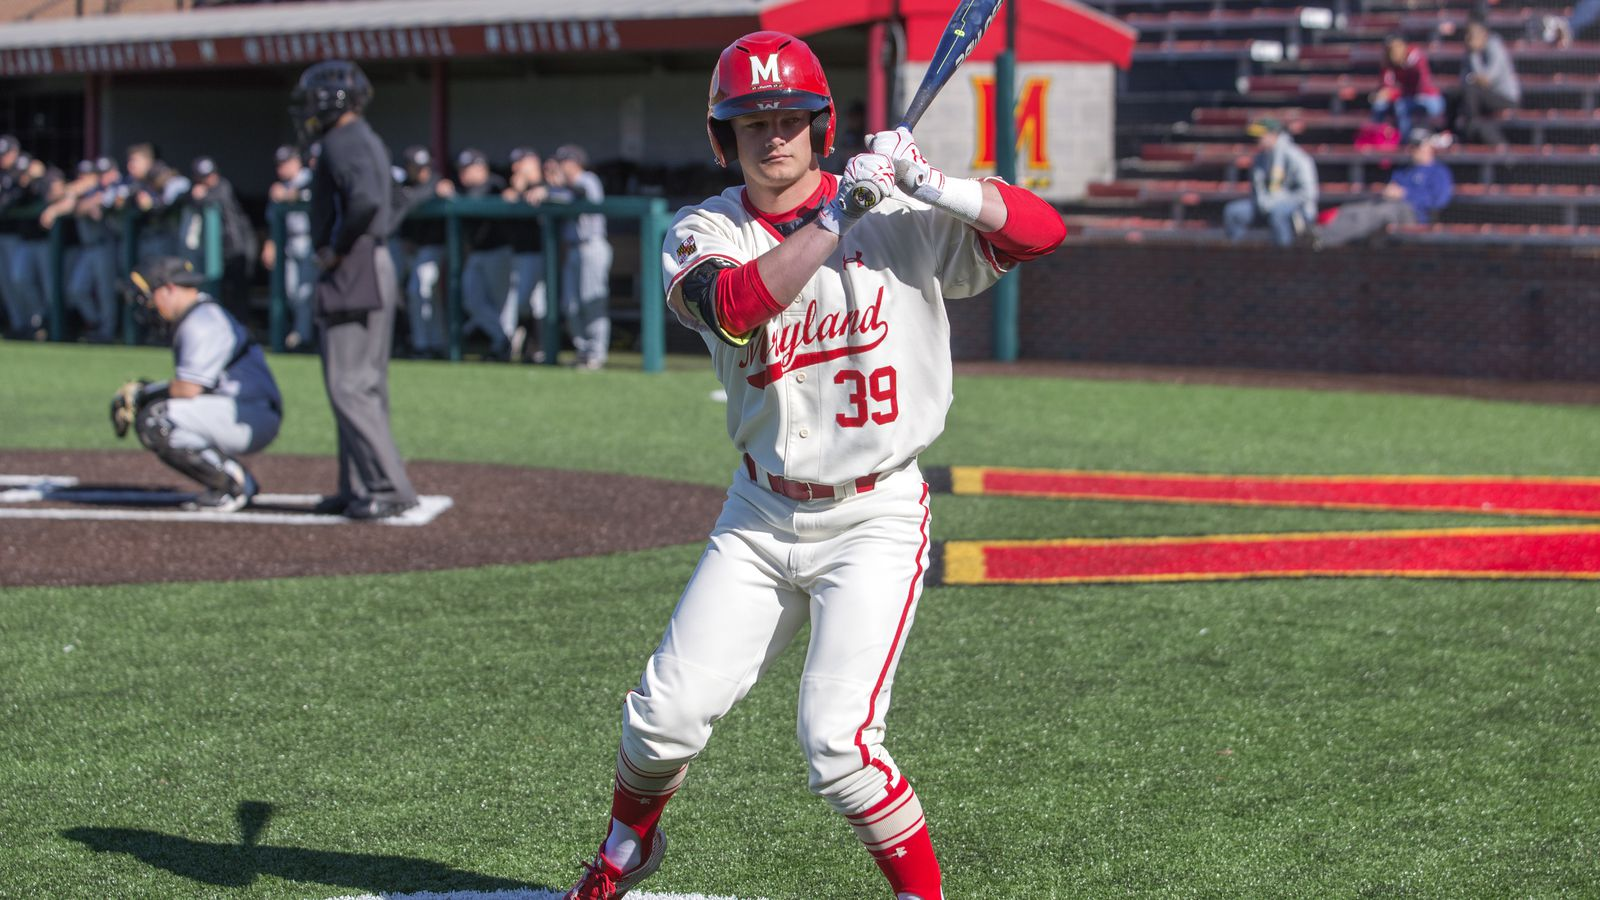 Maryland baseball: Terps fall to West Virginia, 4-1 ...